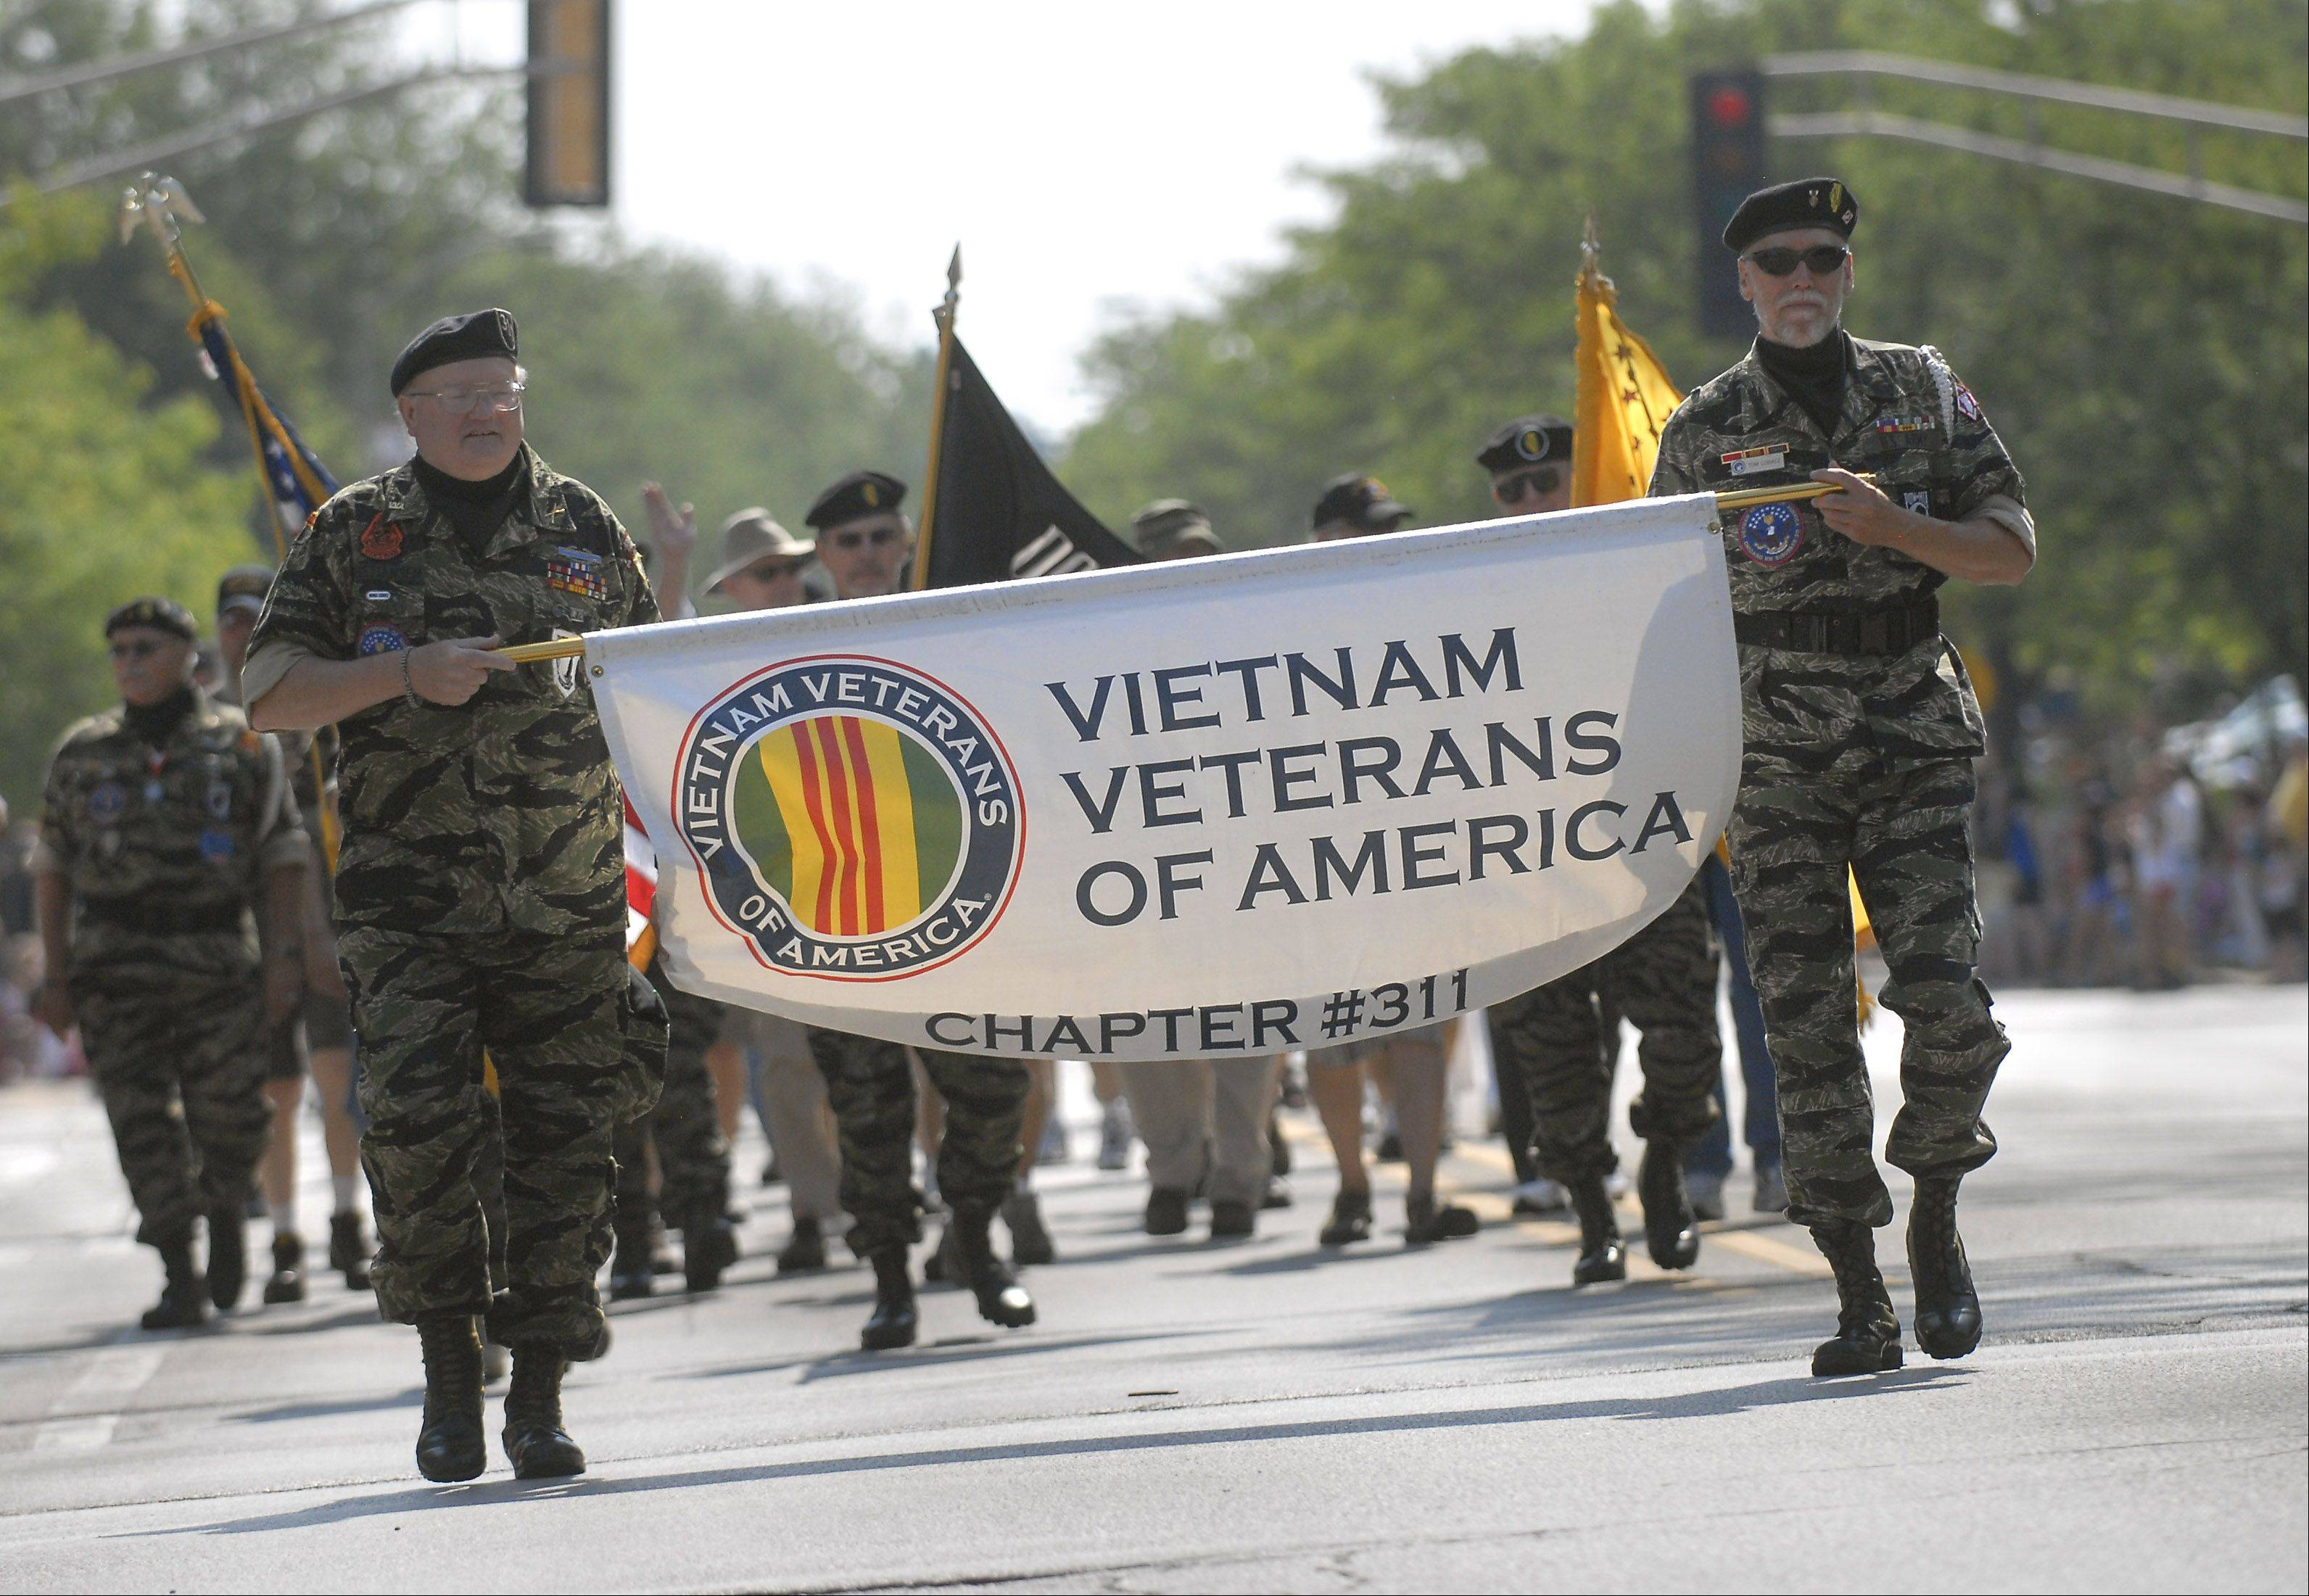 Chapter 311 of the Vietnam Veterans of America march in the Memorial Day parade in Monday in Arlington Heights. The parade kicked off at Village Hall and ended in a ceremony at Memorial Park.